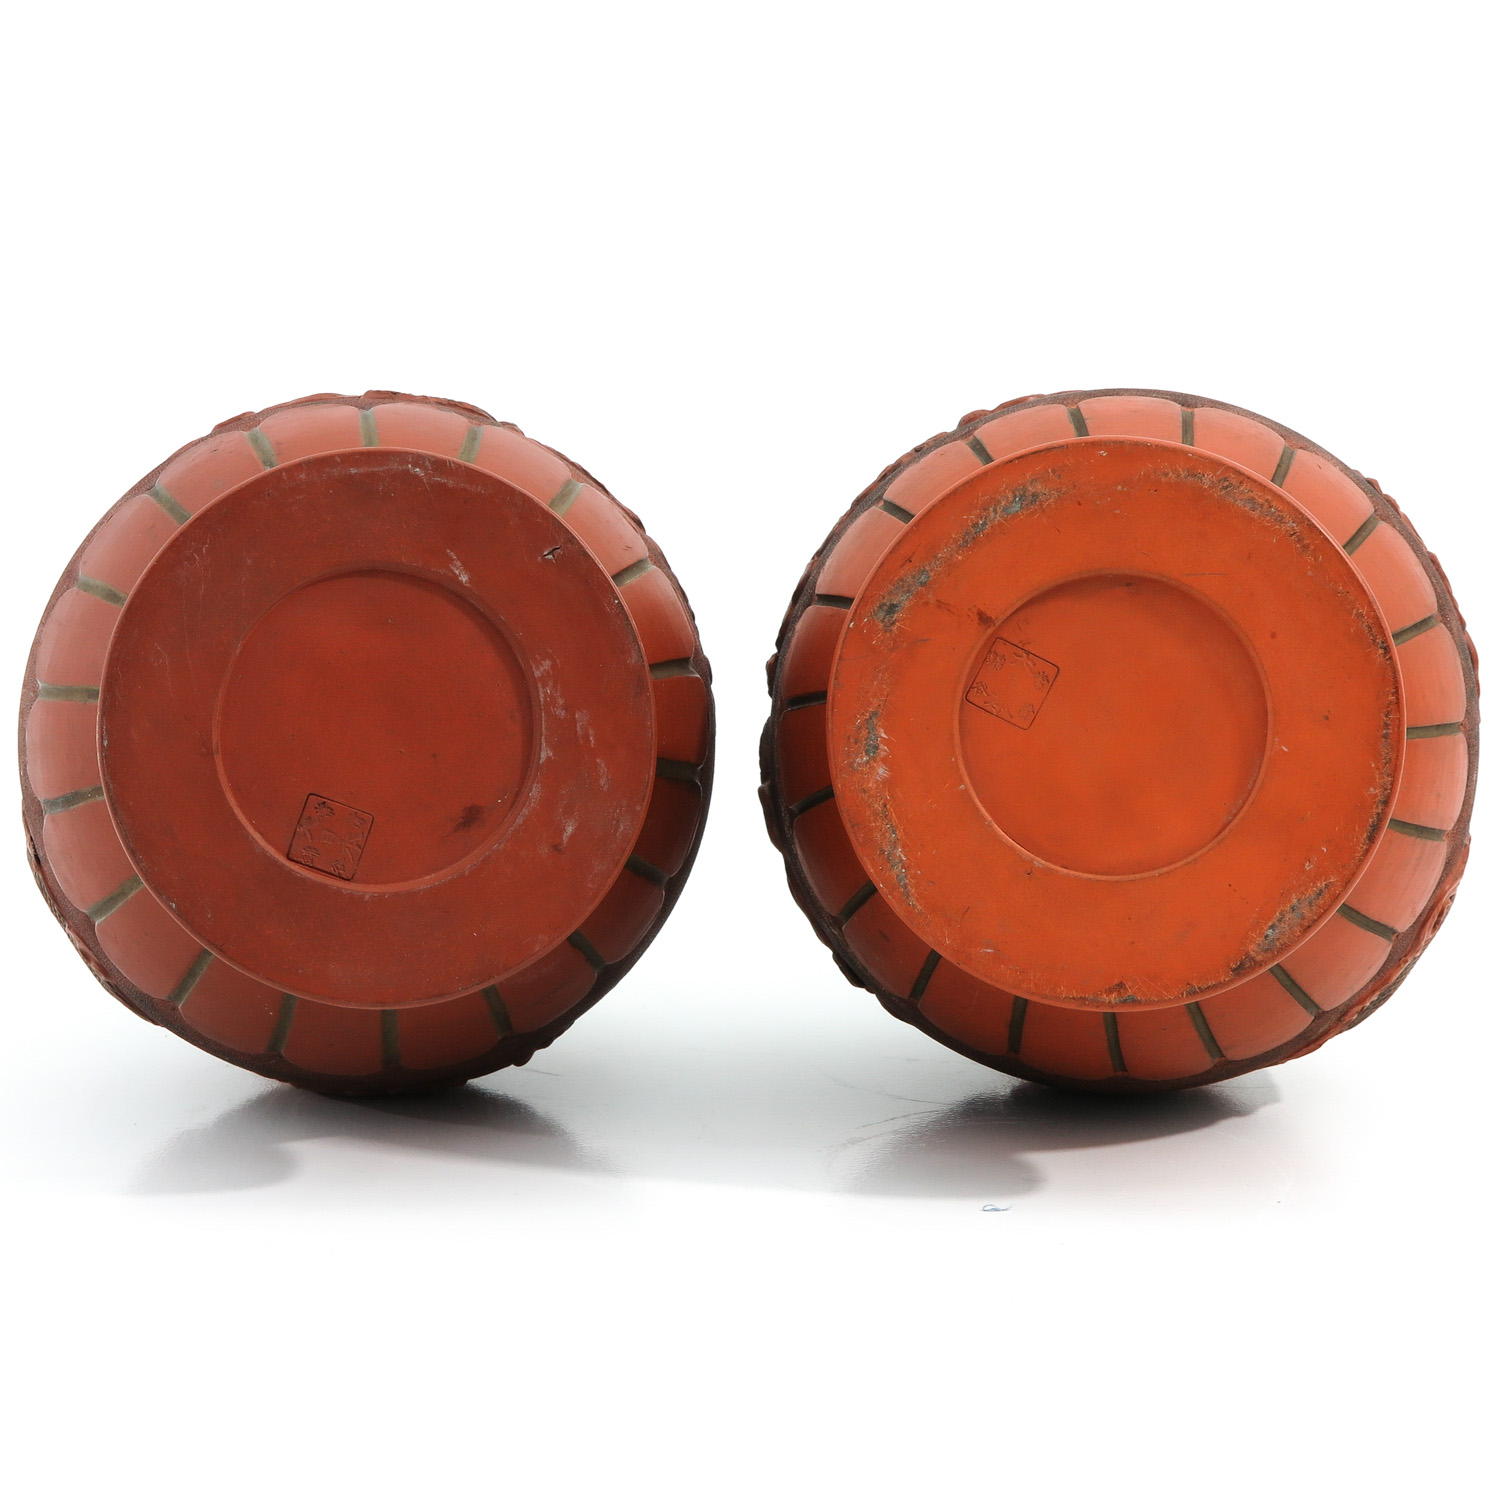 A Pair of Stoneware Vases - Image 6 of 10